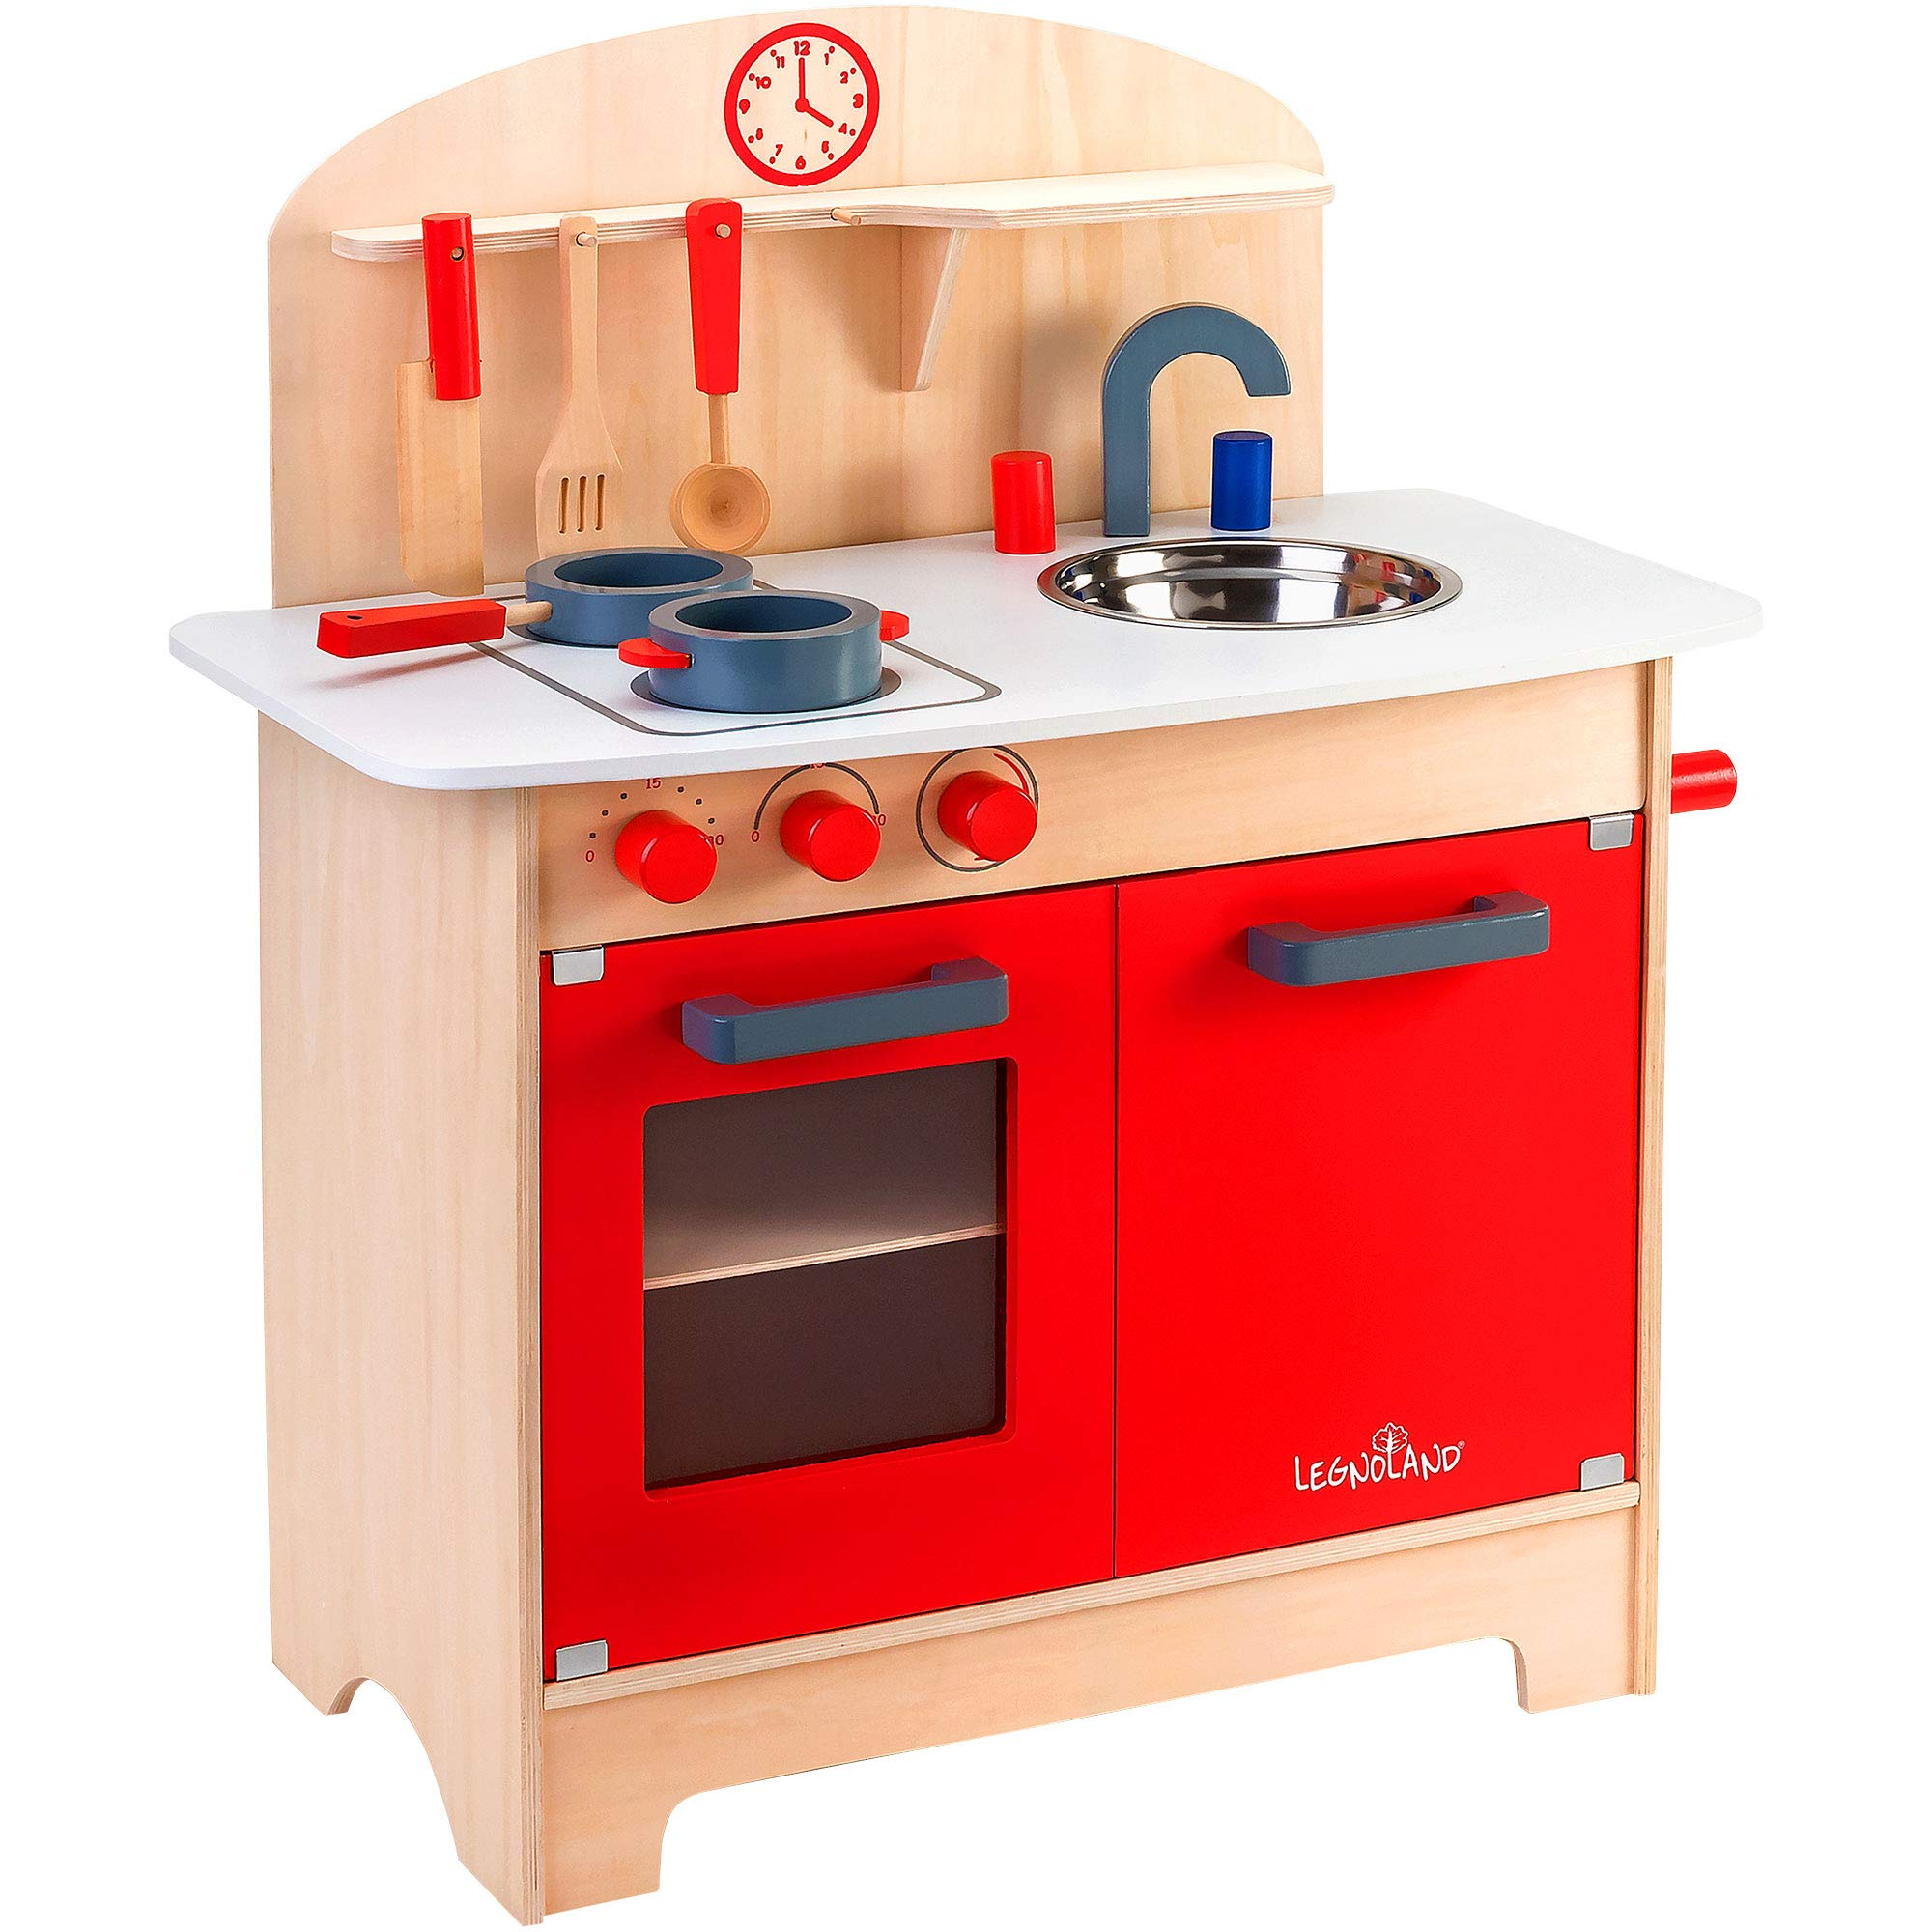 Legnoland 37783 Wooden Kitchen with Accessories